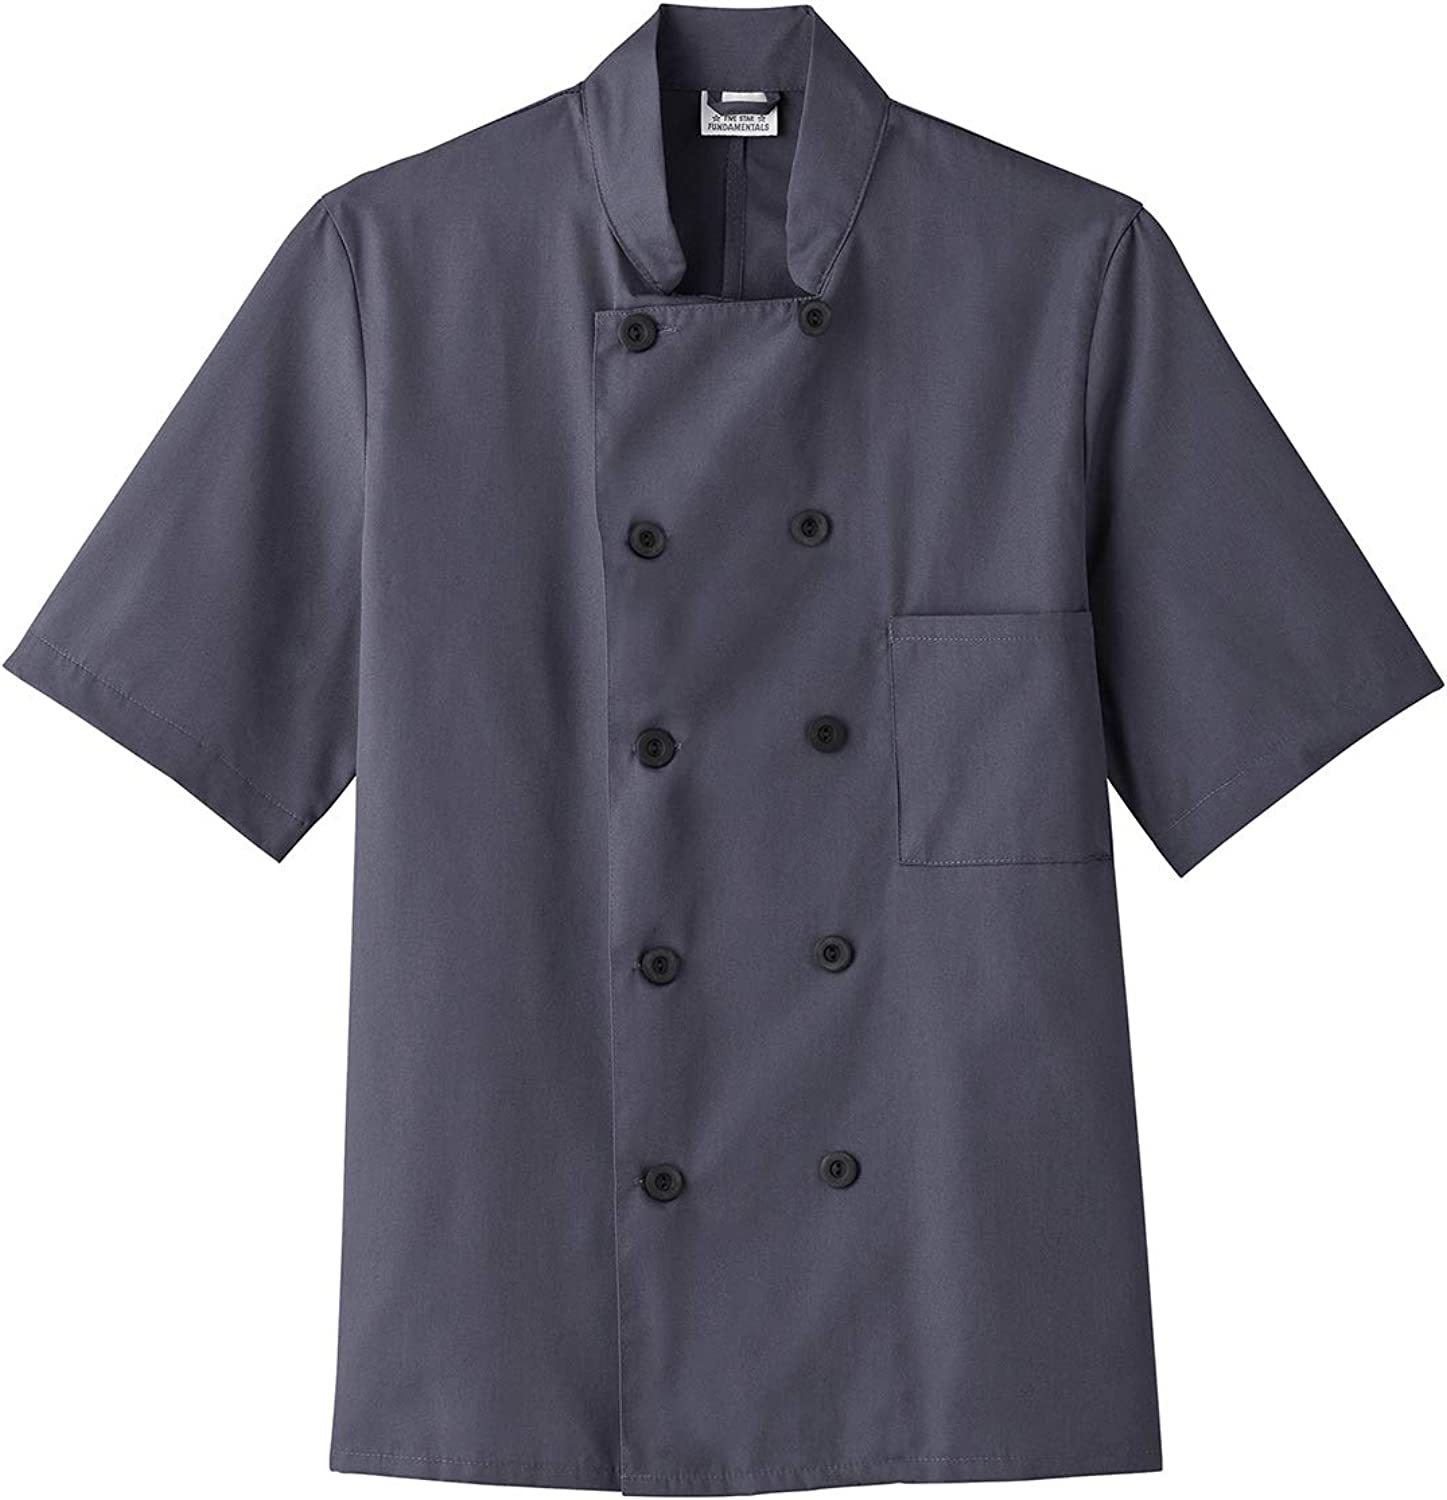 Five Star Chef Apparel 18025 Unisex Short Sleeve Chef Jacket